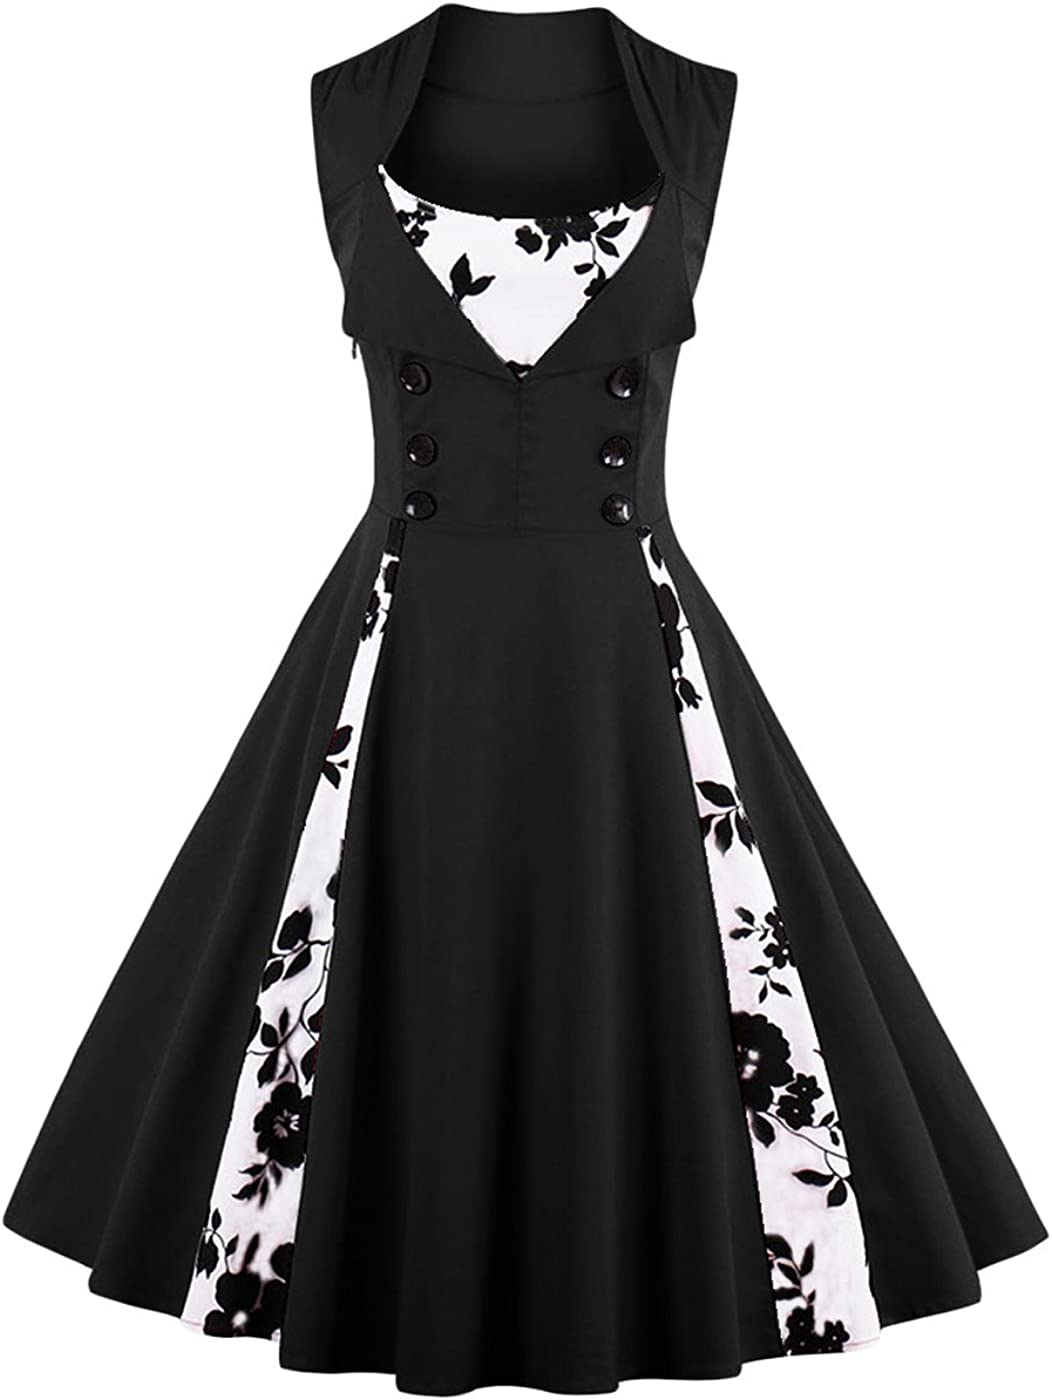 TALLA XL. VERNASSA 50s Vestidos Vintage,Mujeres 1950s Vintage A-Line Rockabilly Clásico Verano Dress for Evening Party Cocktail, Multicolor, S-Plus Size 4XL 1357f-negro